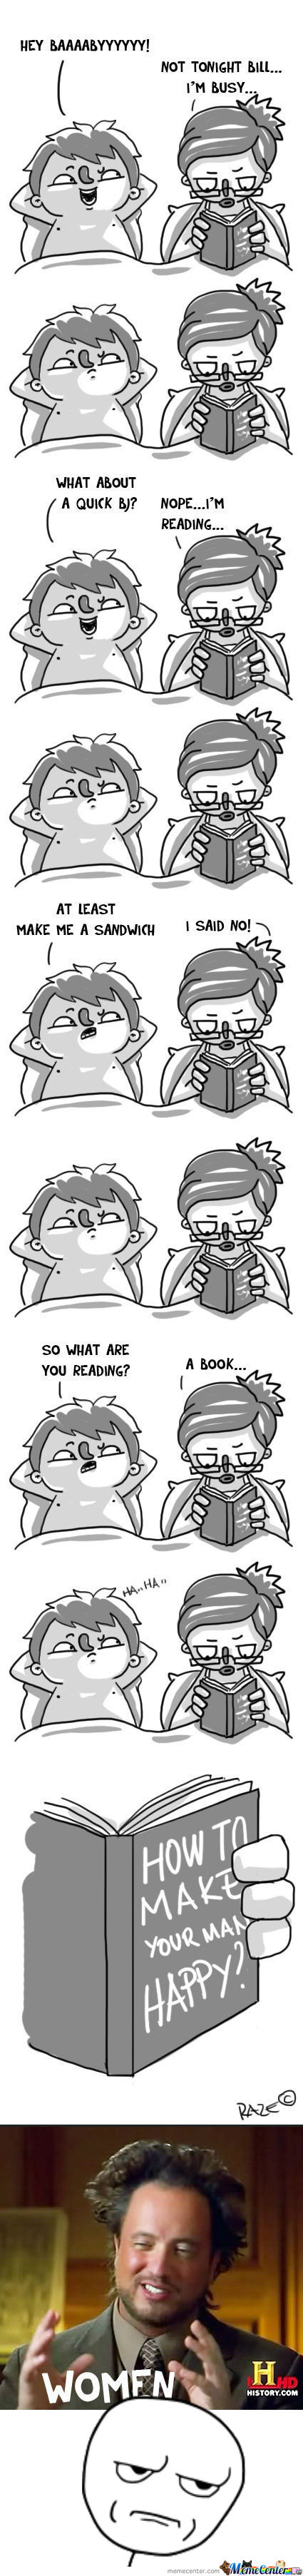 [RMX] Books Are The Best Friends